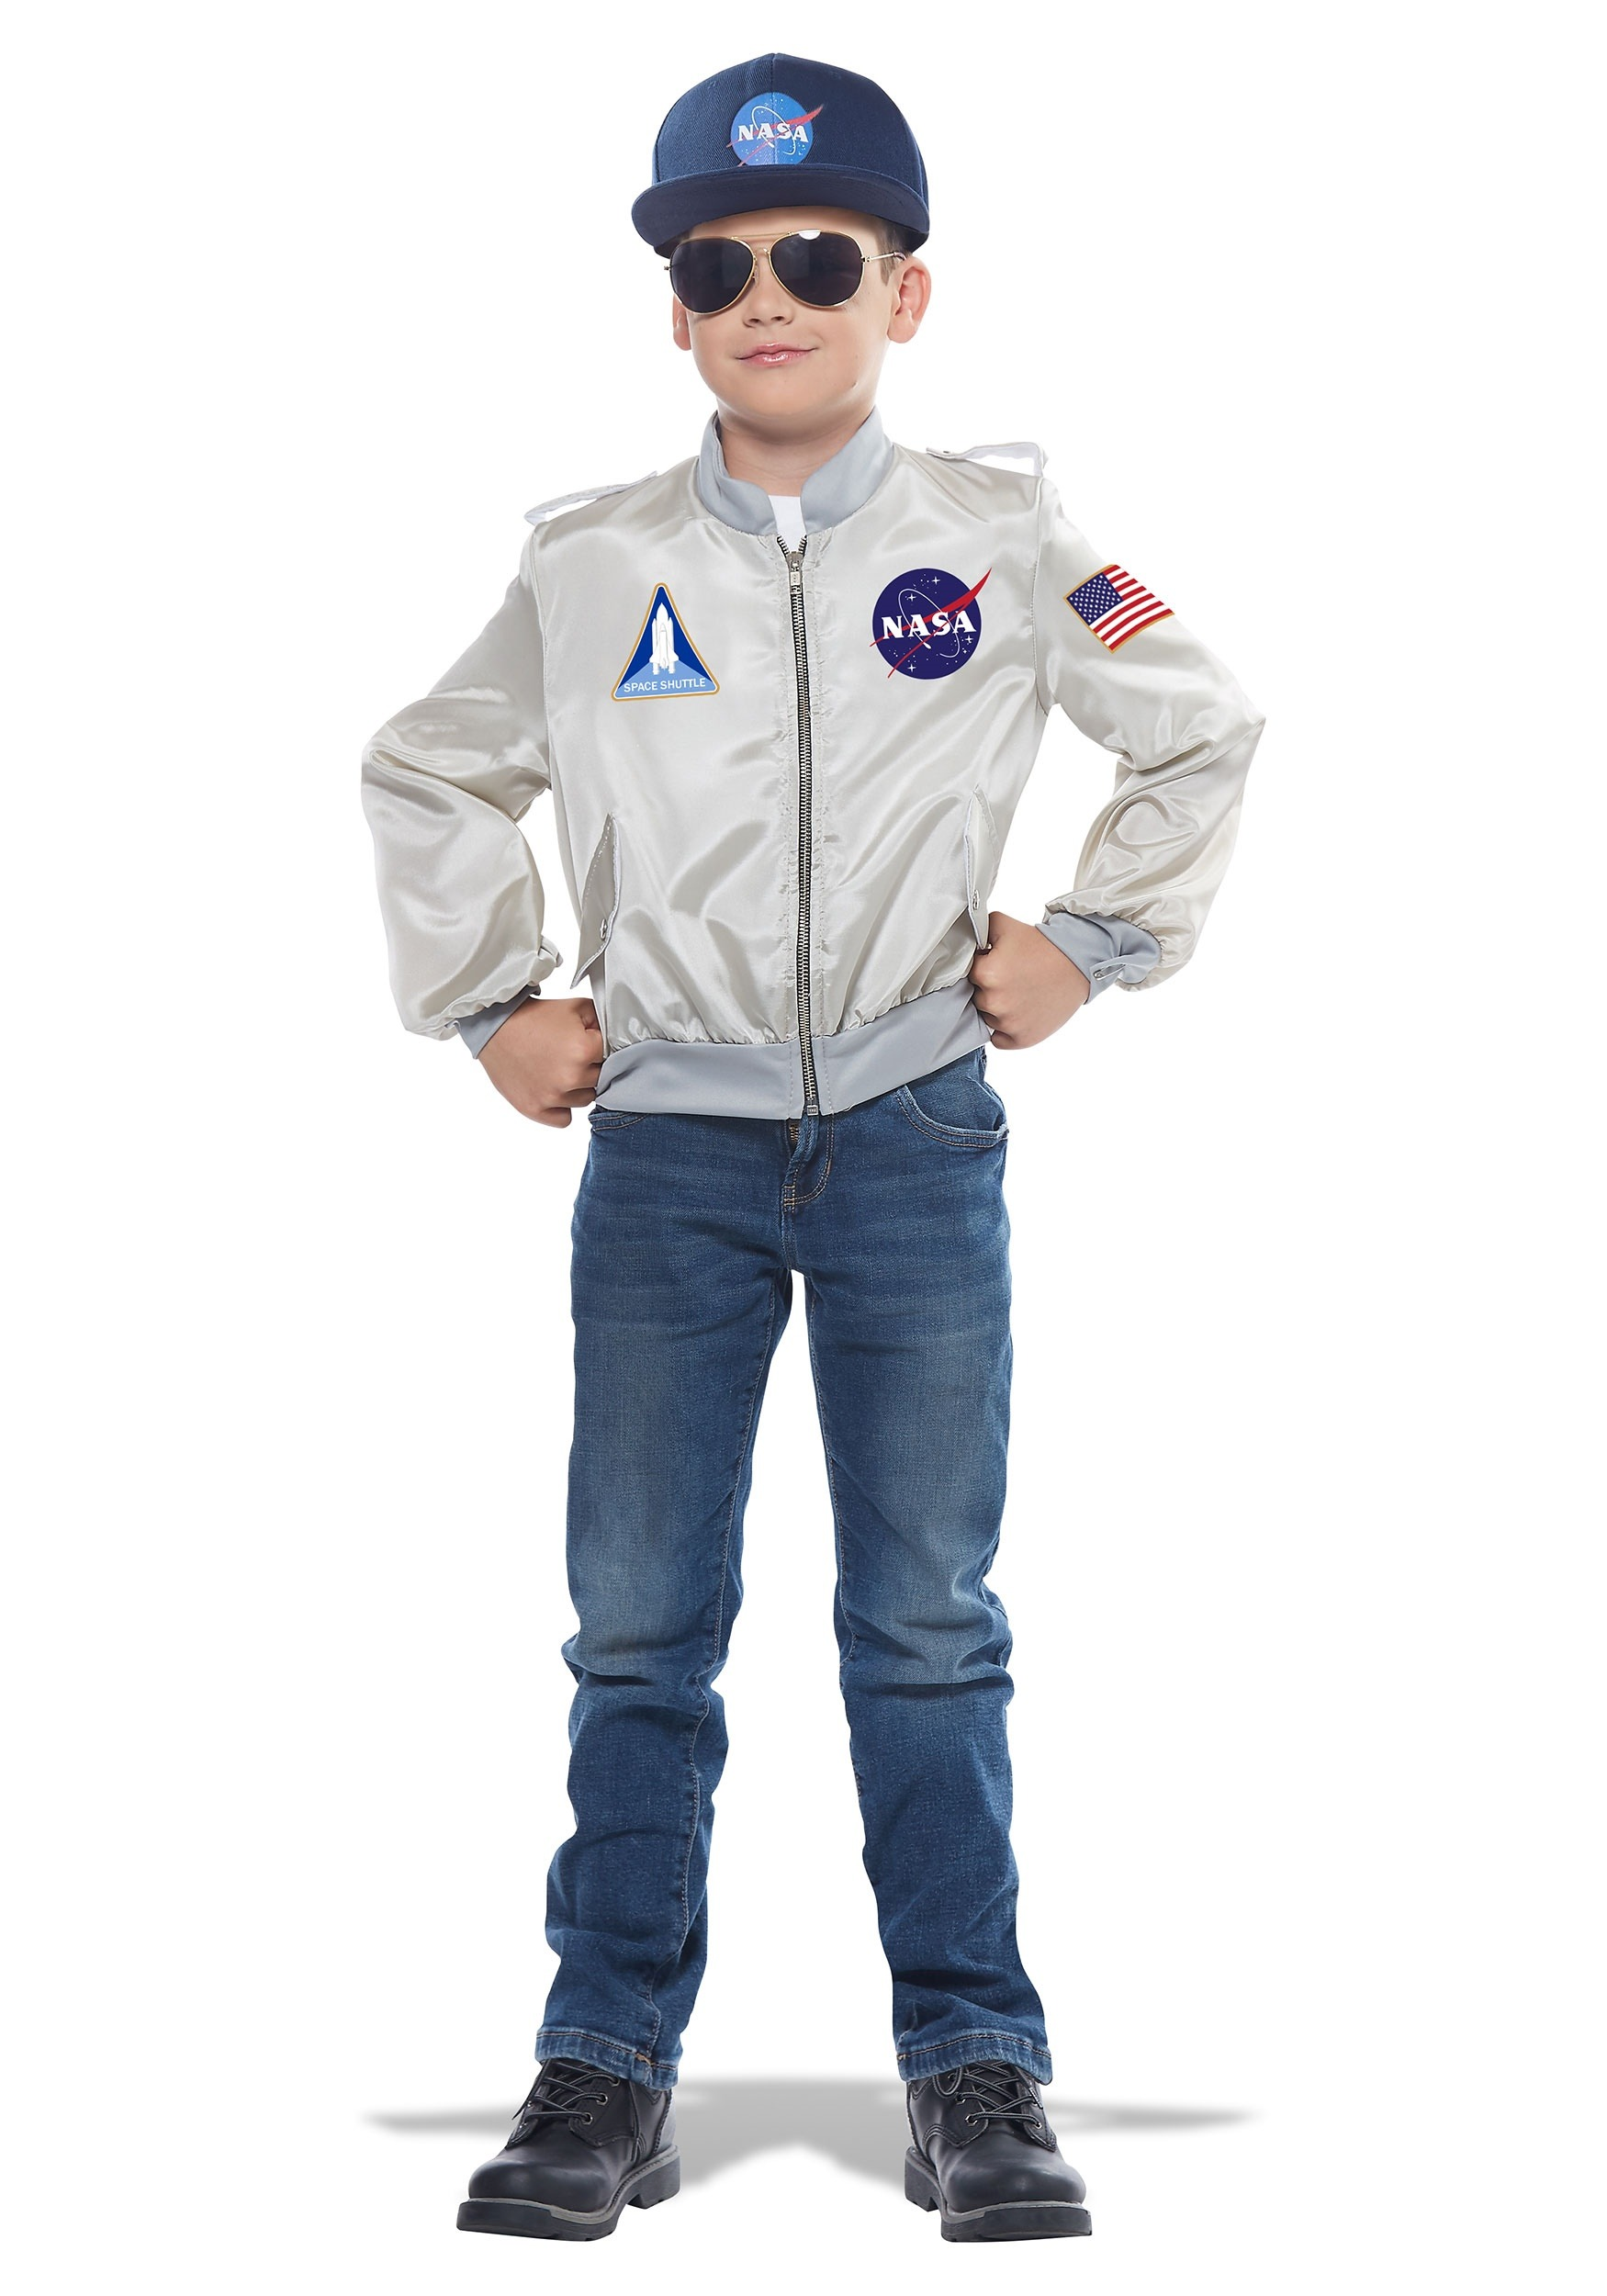 NASA Flight Jacket Costume for Children